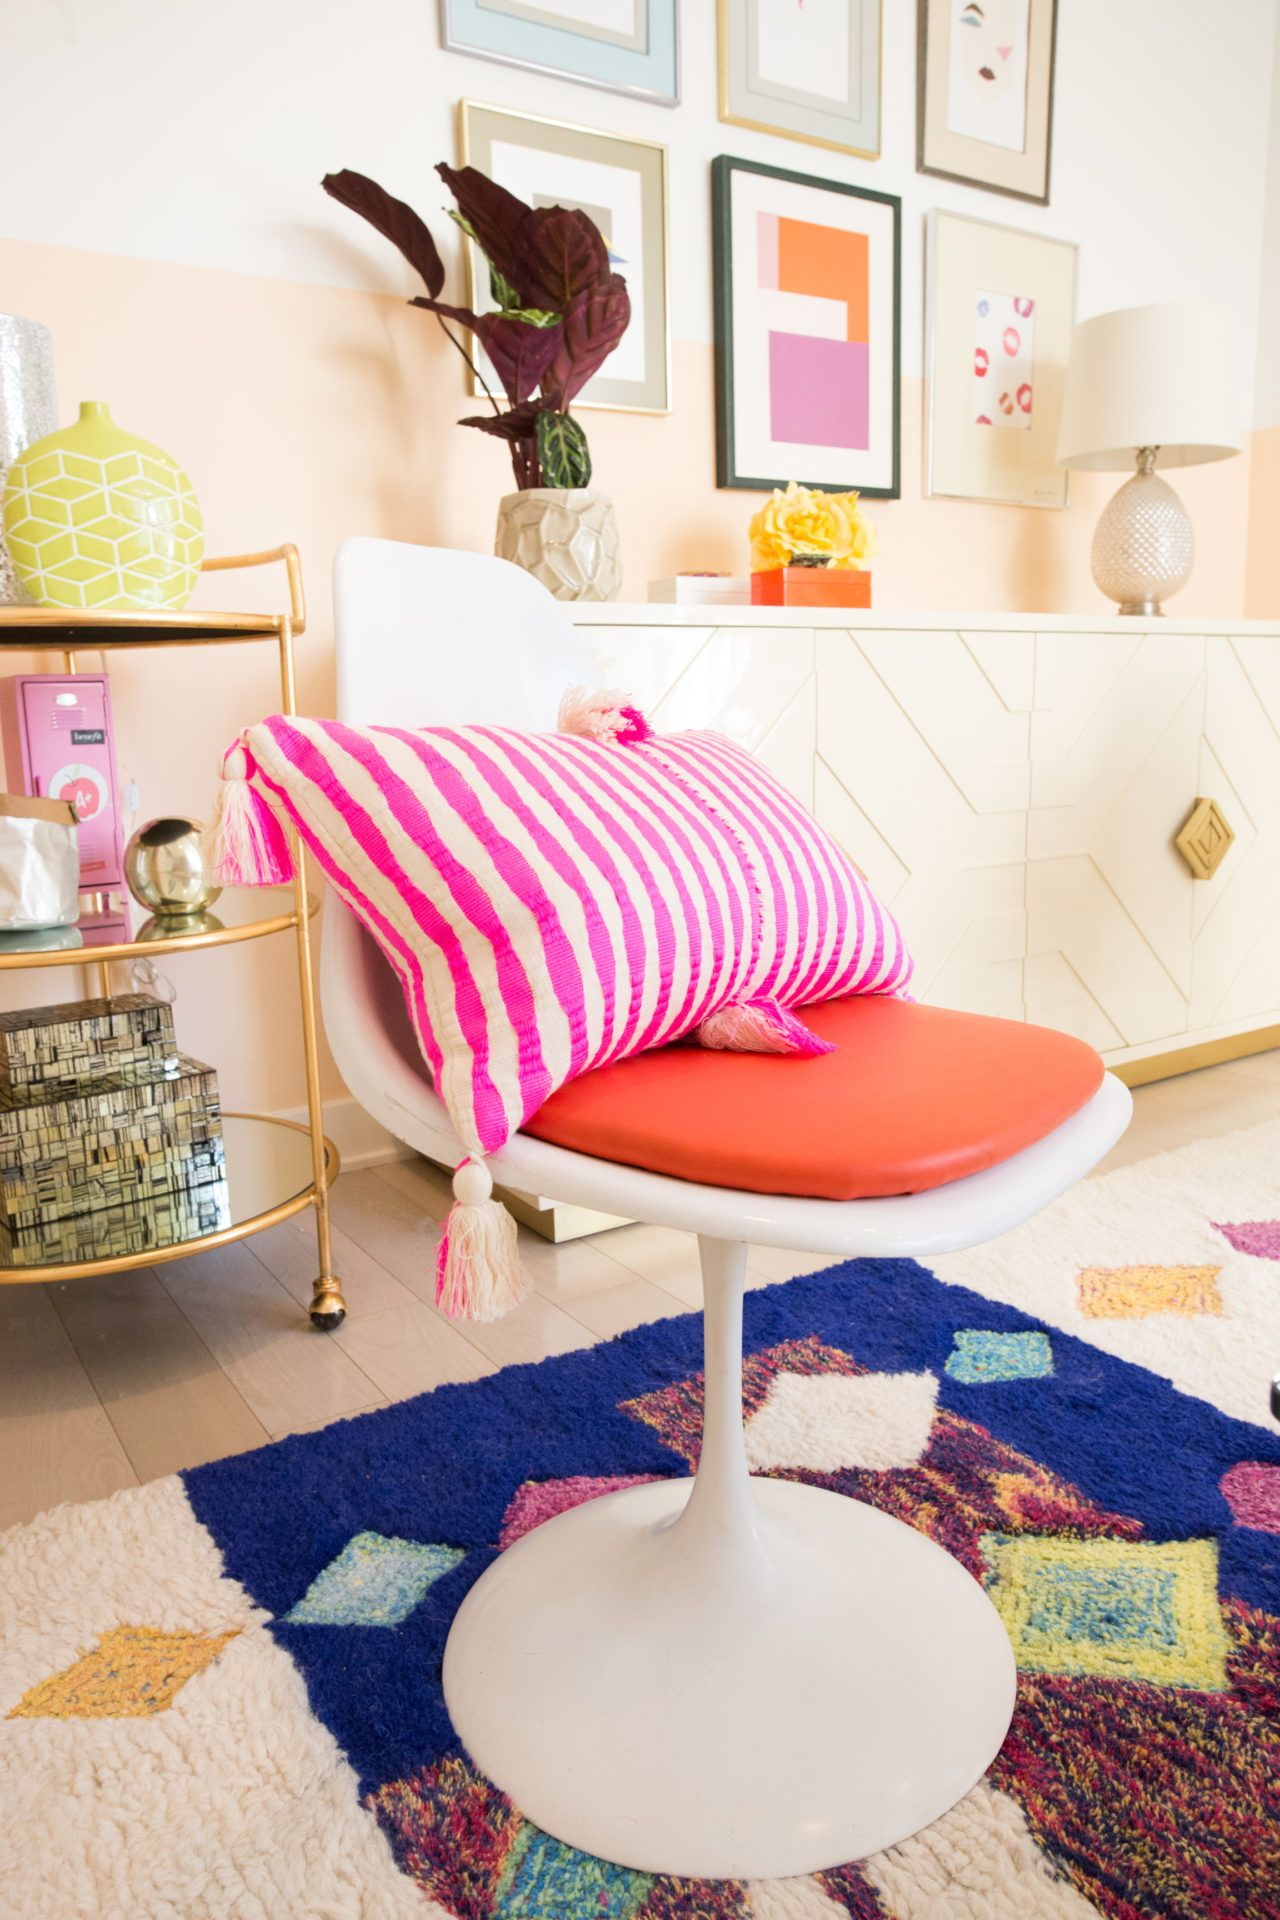 This vintage tulip chair, paired with a bright pink striped pillow is a pop of colorful fun for a lively living room design!